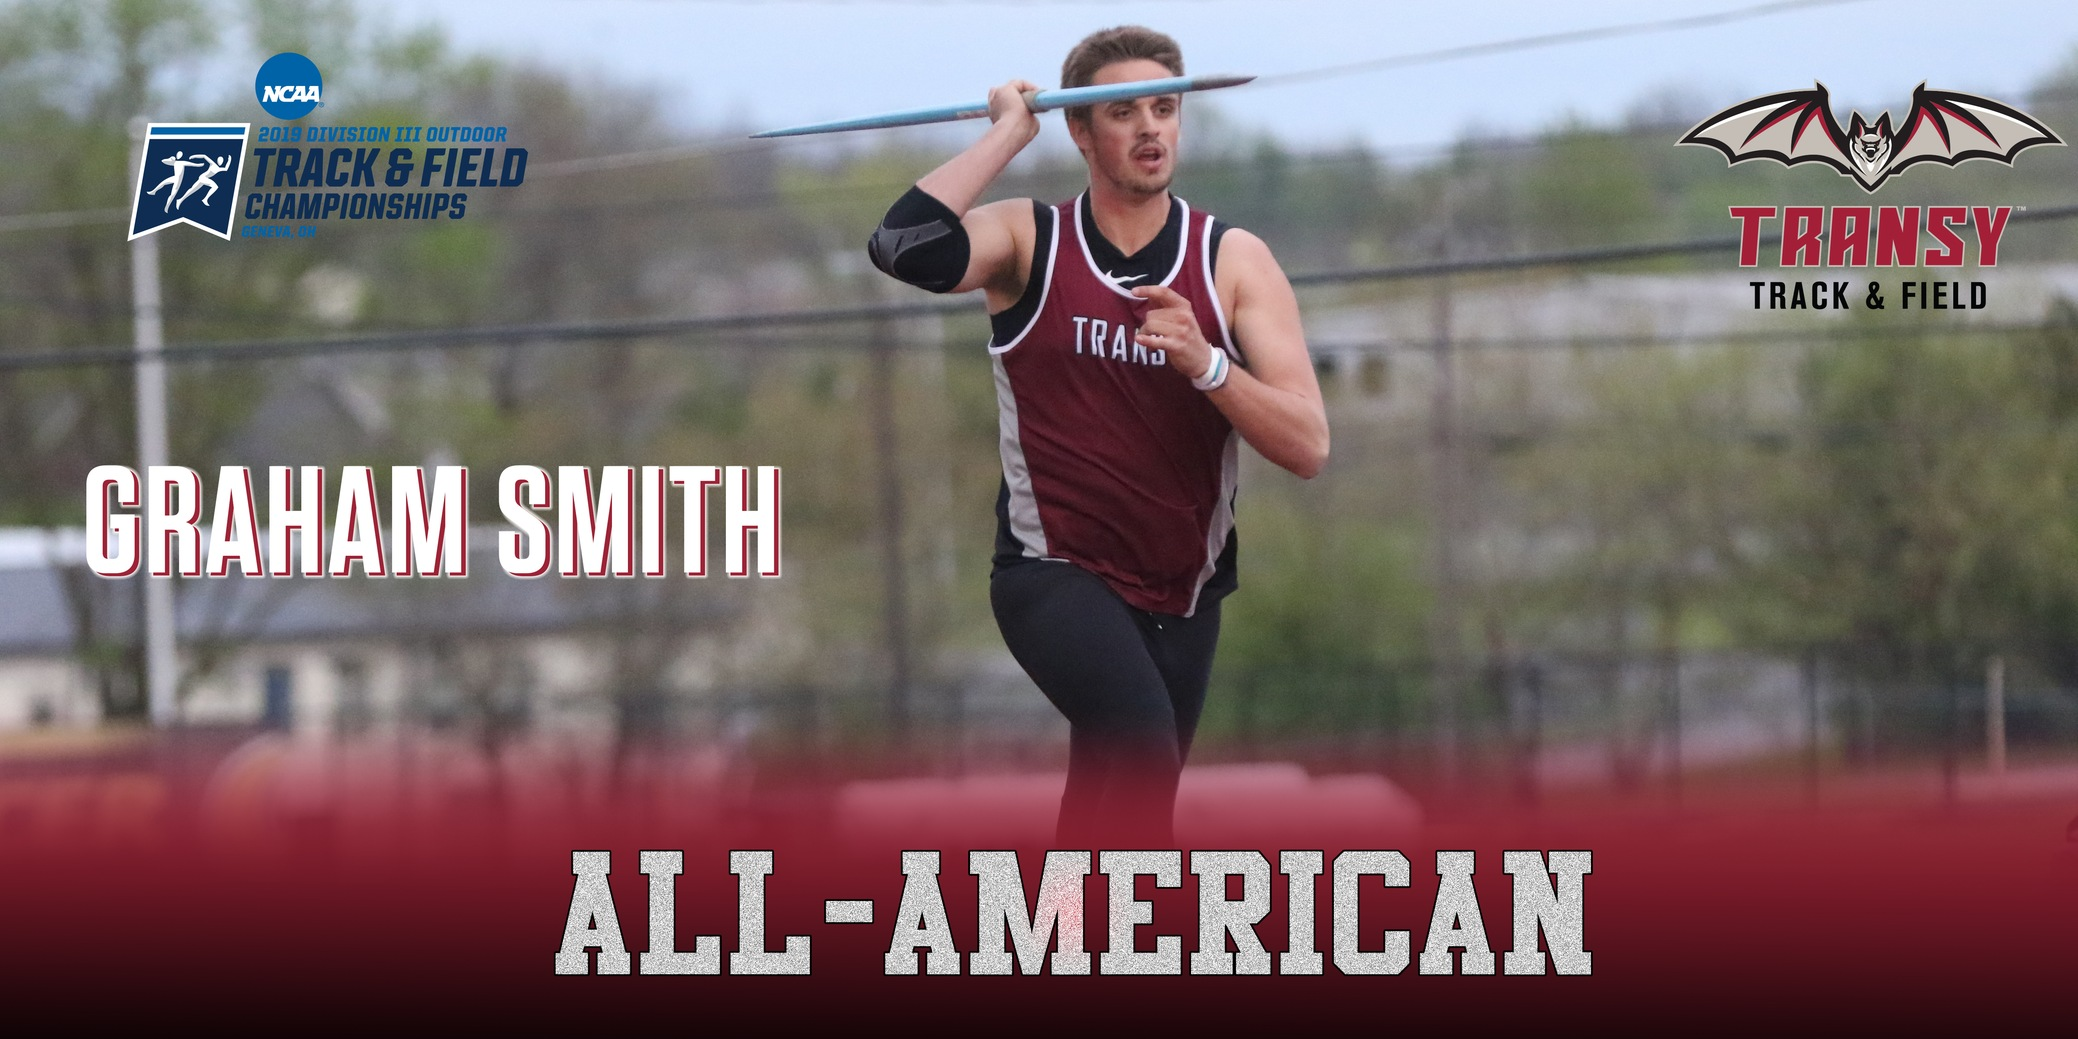 Graham Smith all-american